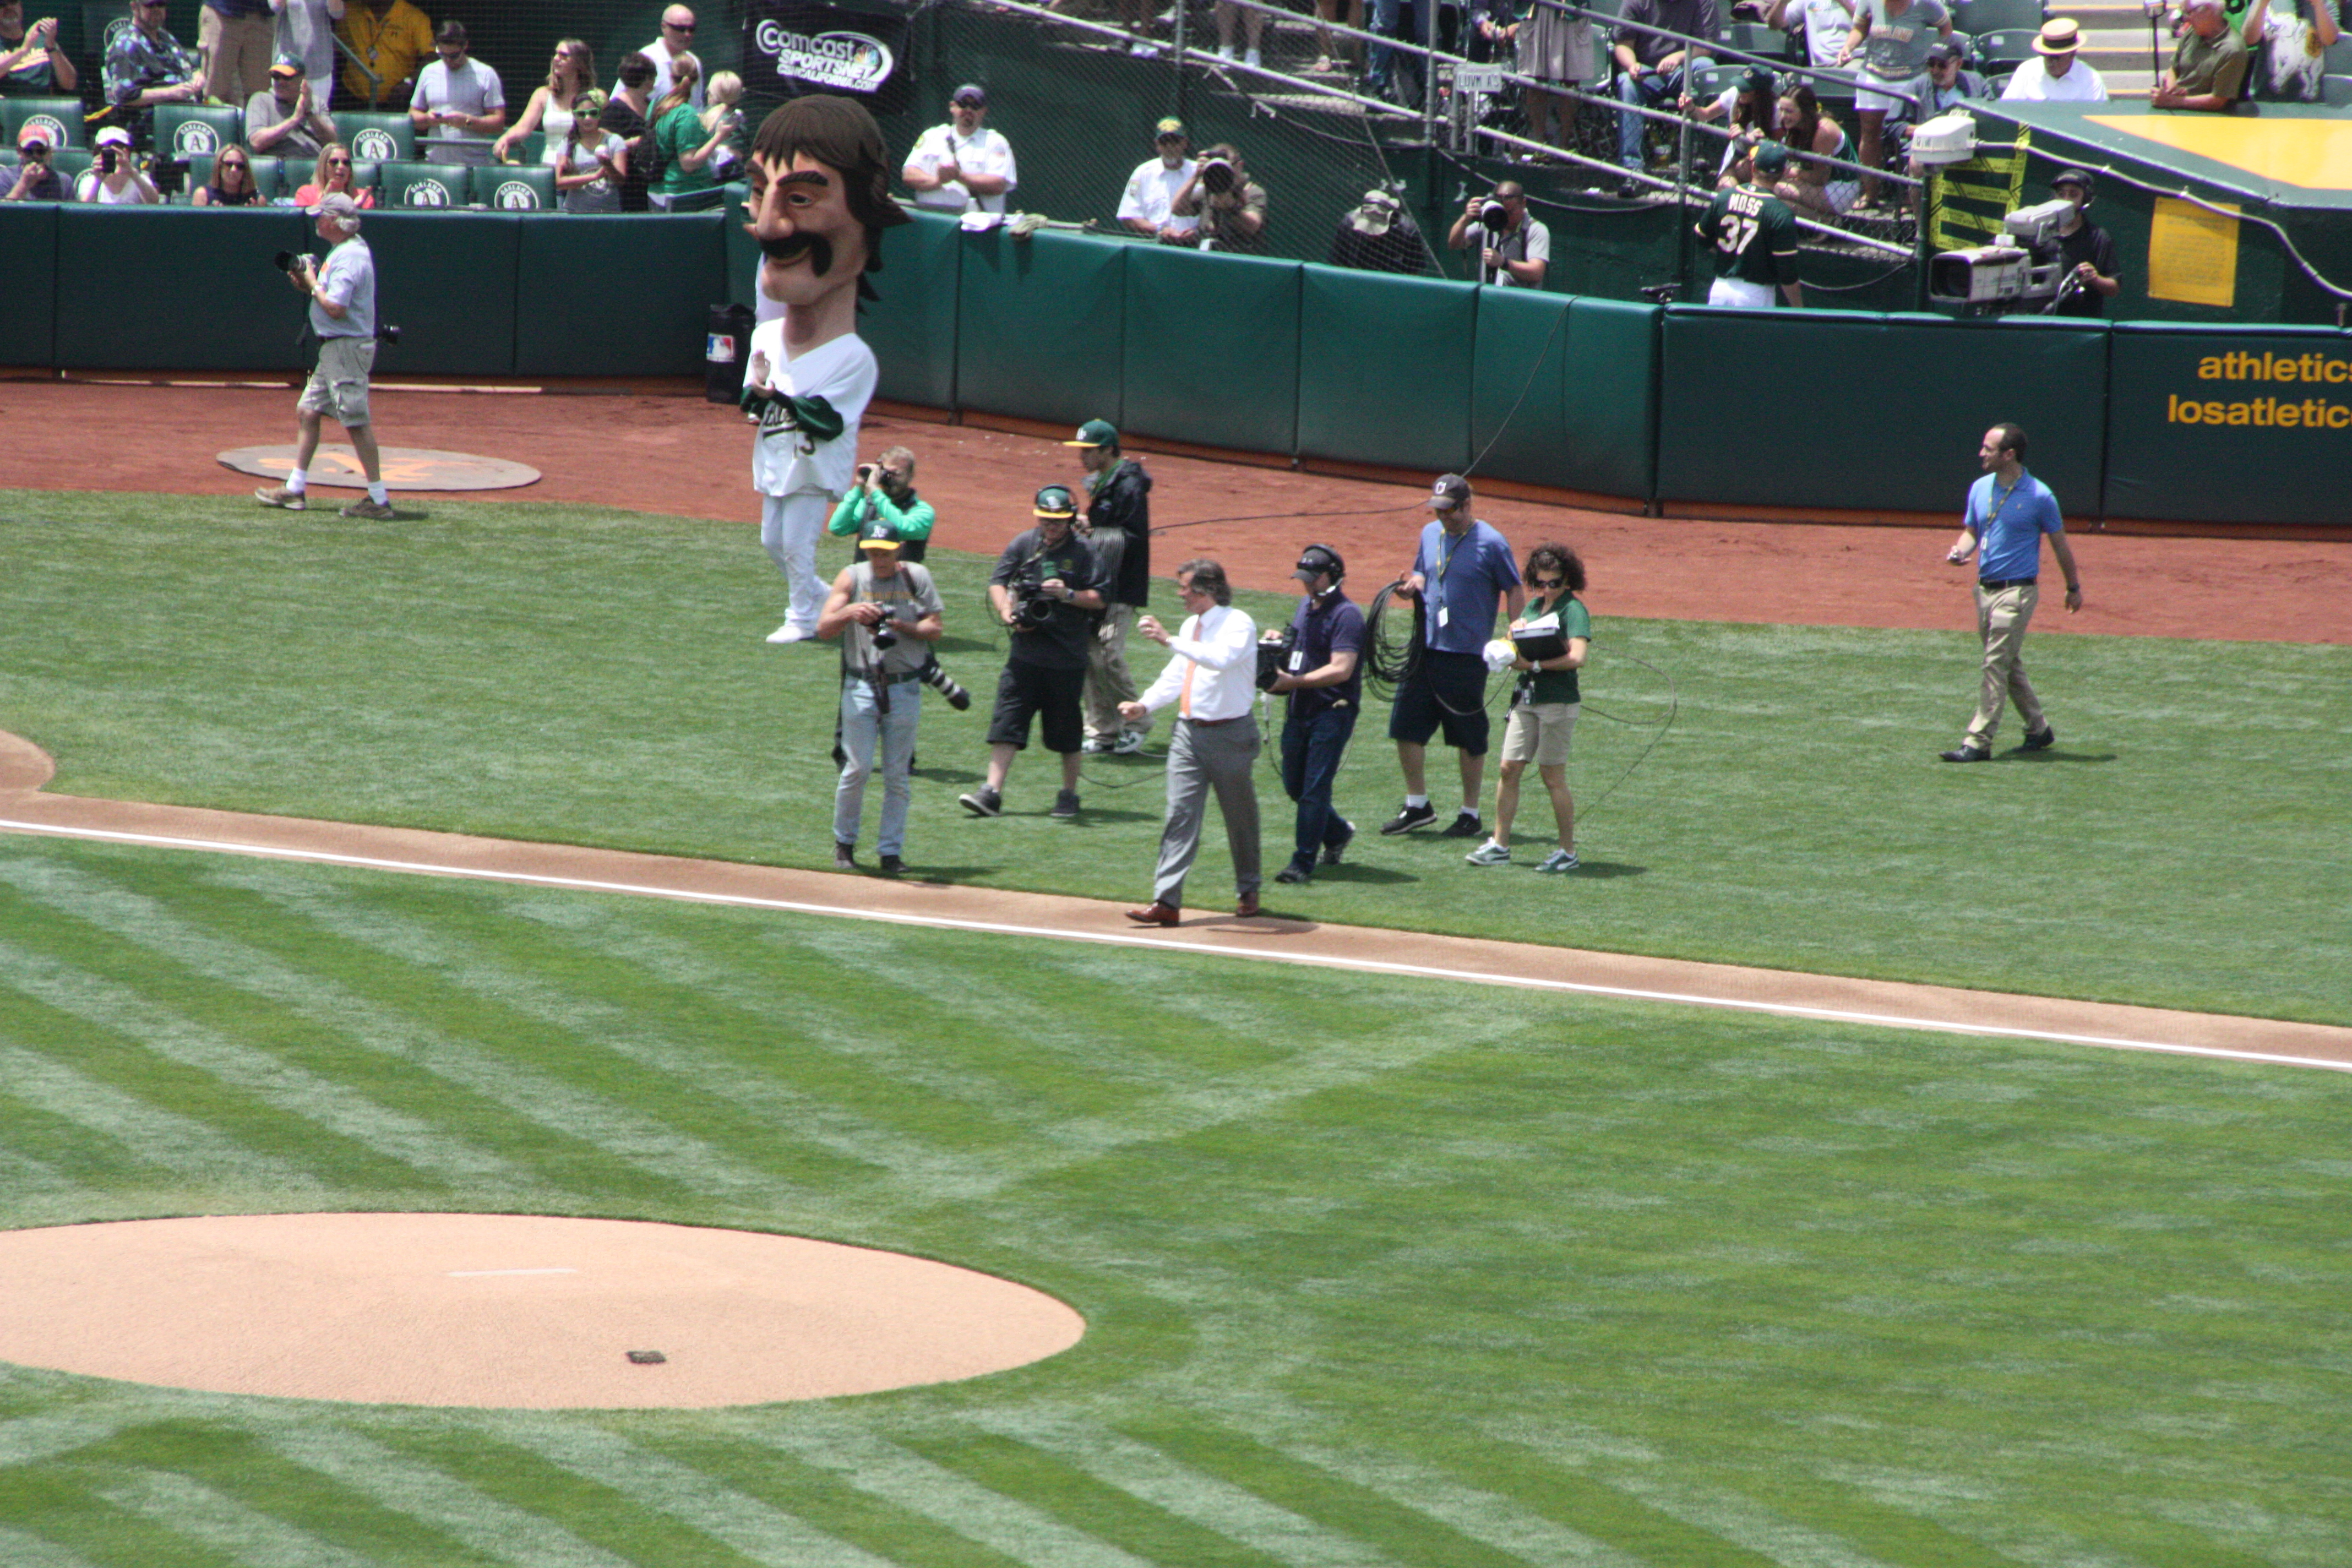 Hall of Famer first pitch